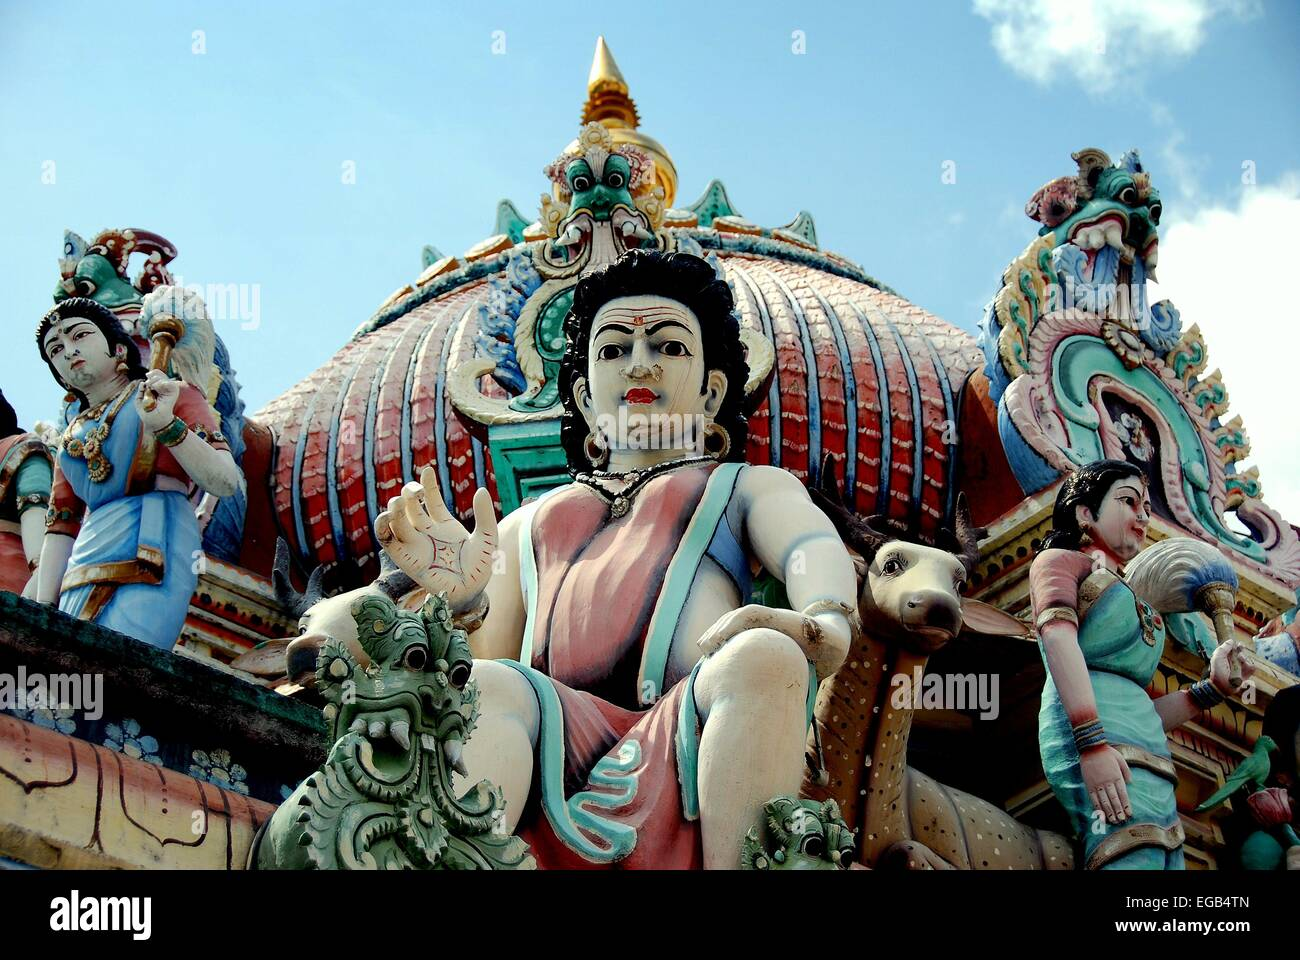 Singapore: Hand-carved colourful Hindu deities on the roof of the Sri Mariamman temple in Chinatown  * Stock Photo